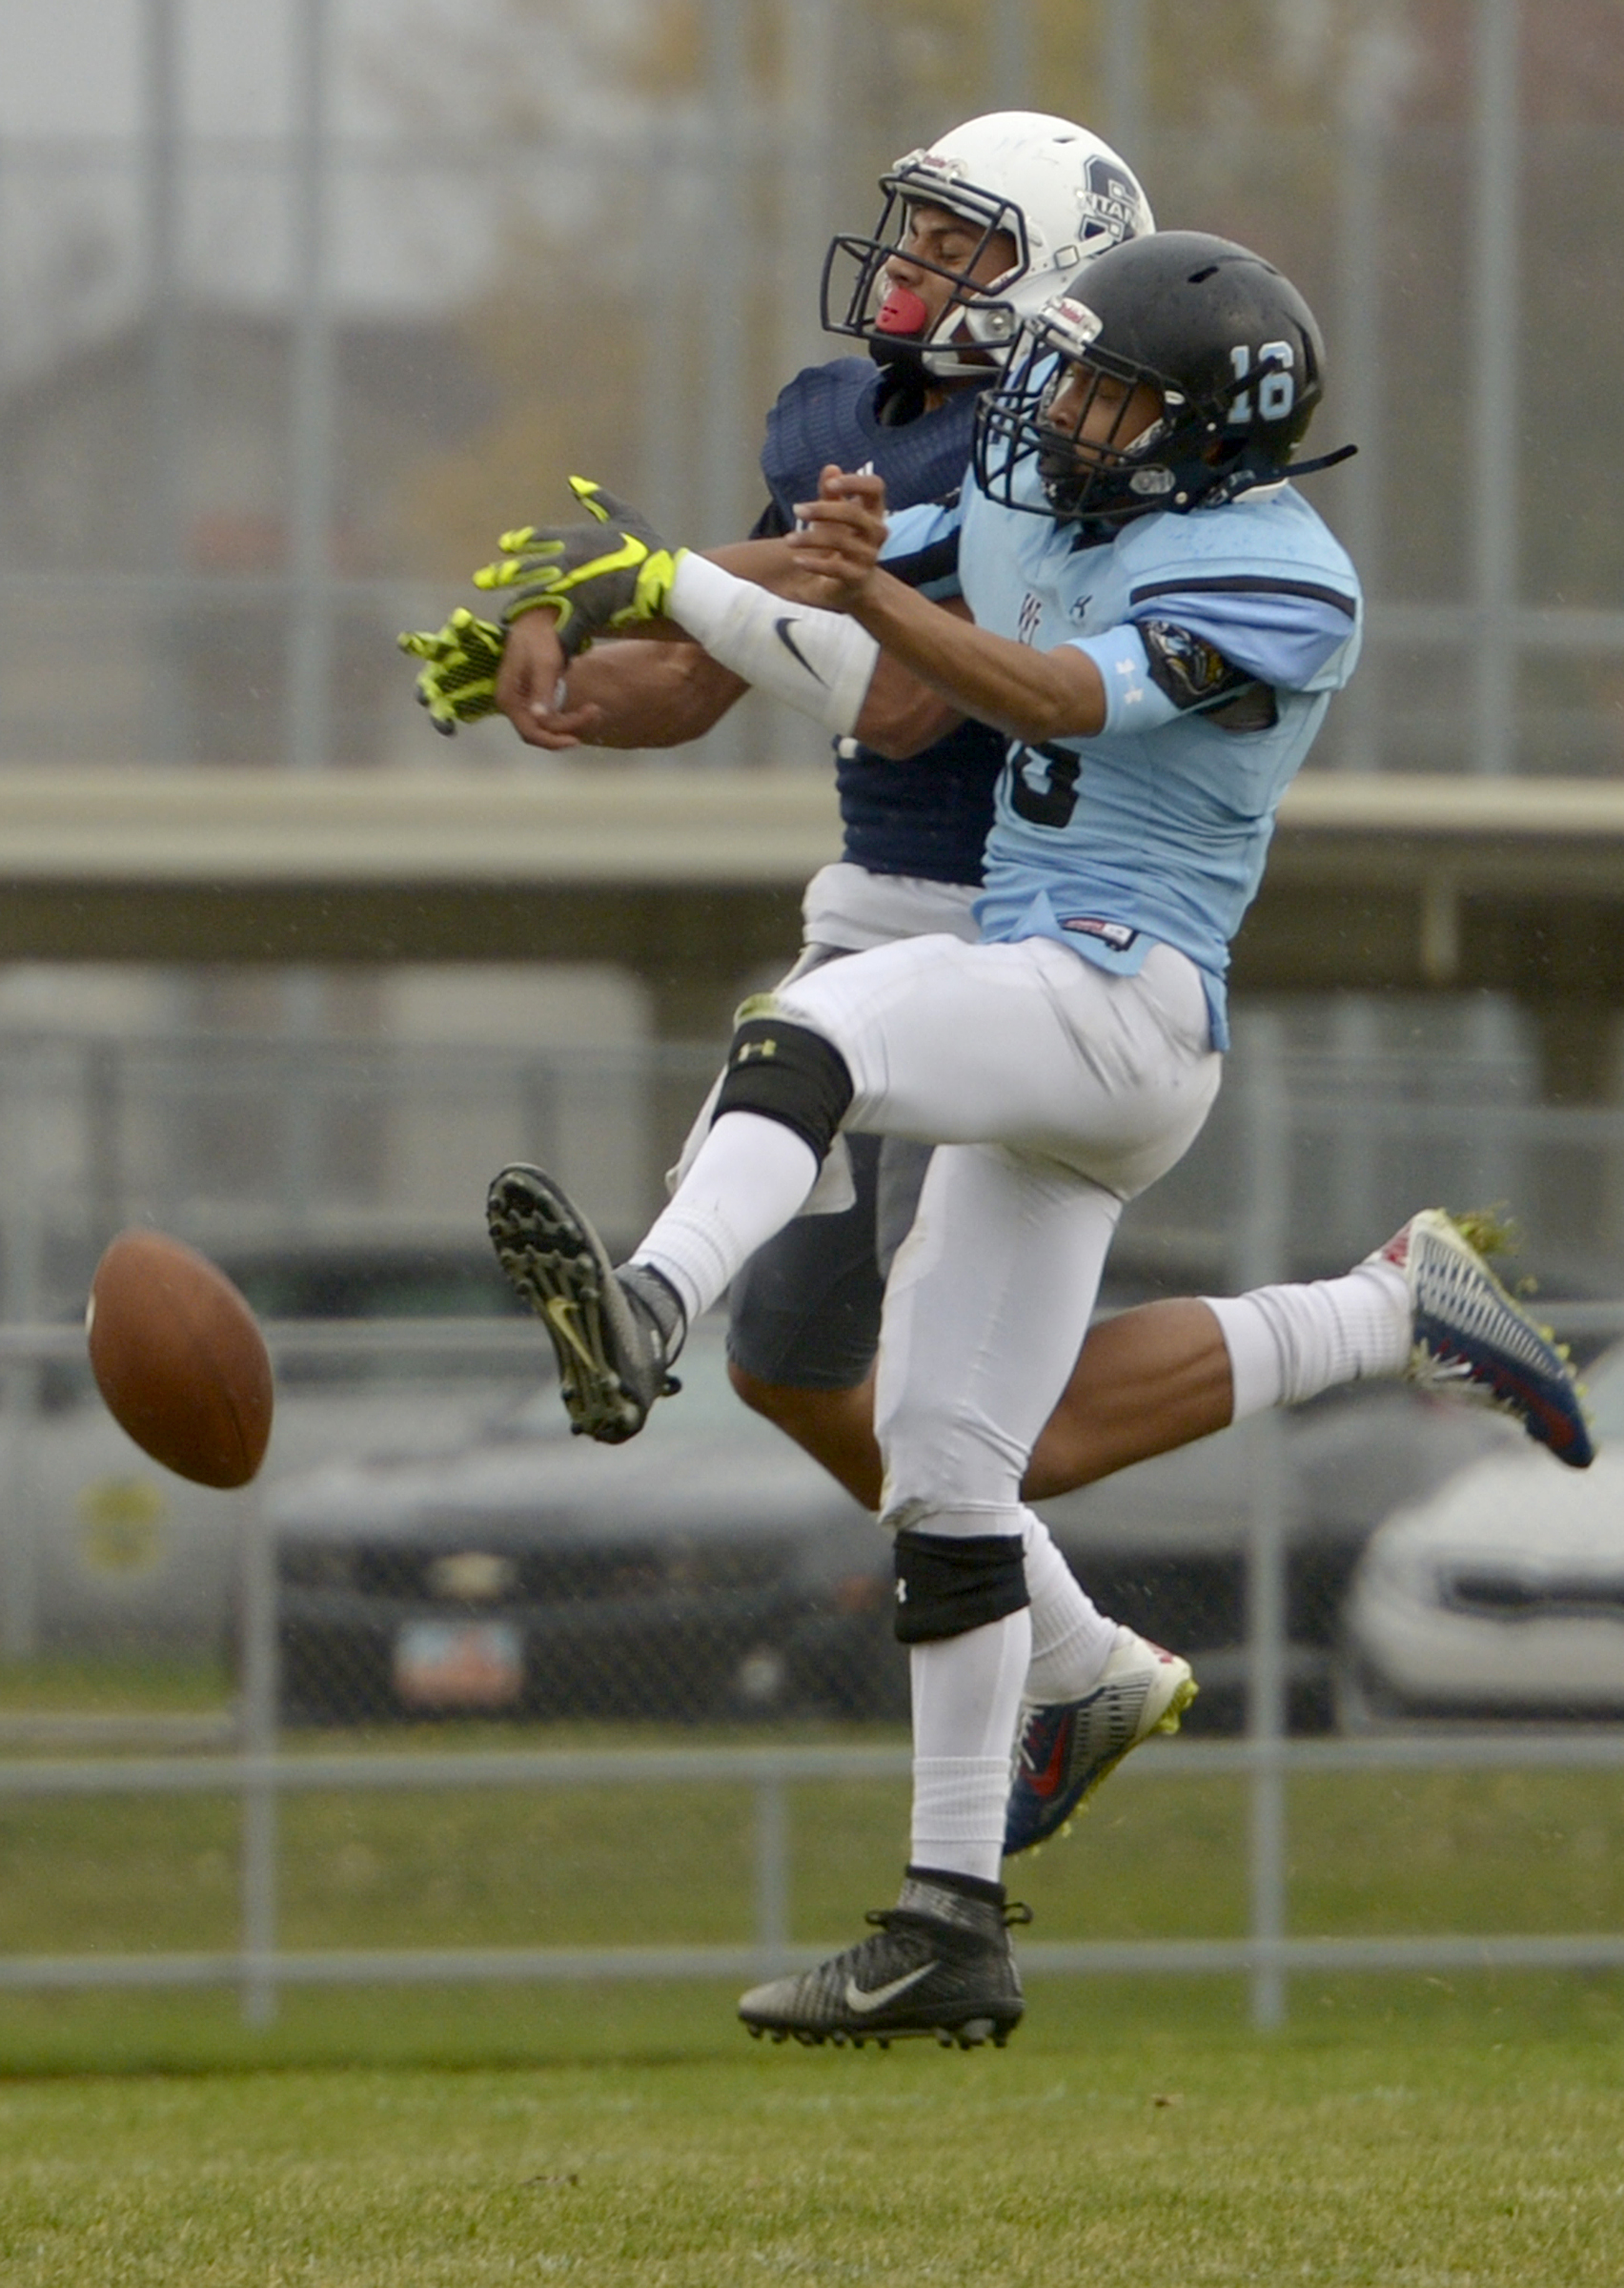 Leah Hogsten  |  The Salt Lake Tribune Pass intended for Syracuse's NJ Mo'o is knocked down by West Jordan's Adrian Moctezuma.  Syracuse High School  battles West Jordan High School in the opening round of the Class 5A football playoffs, Friday, October 28, 2016.